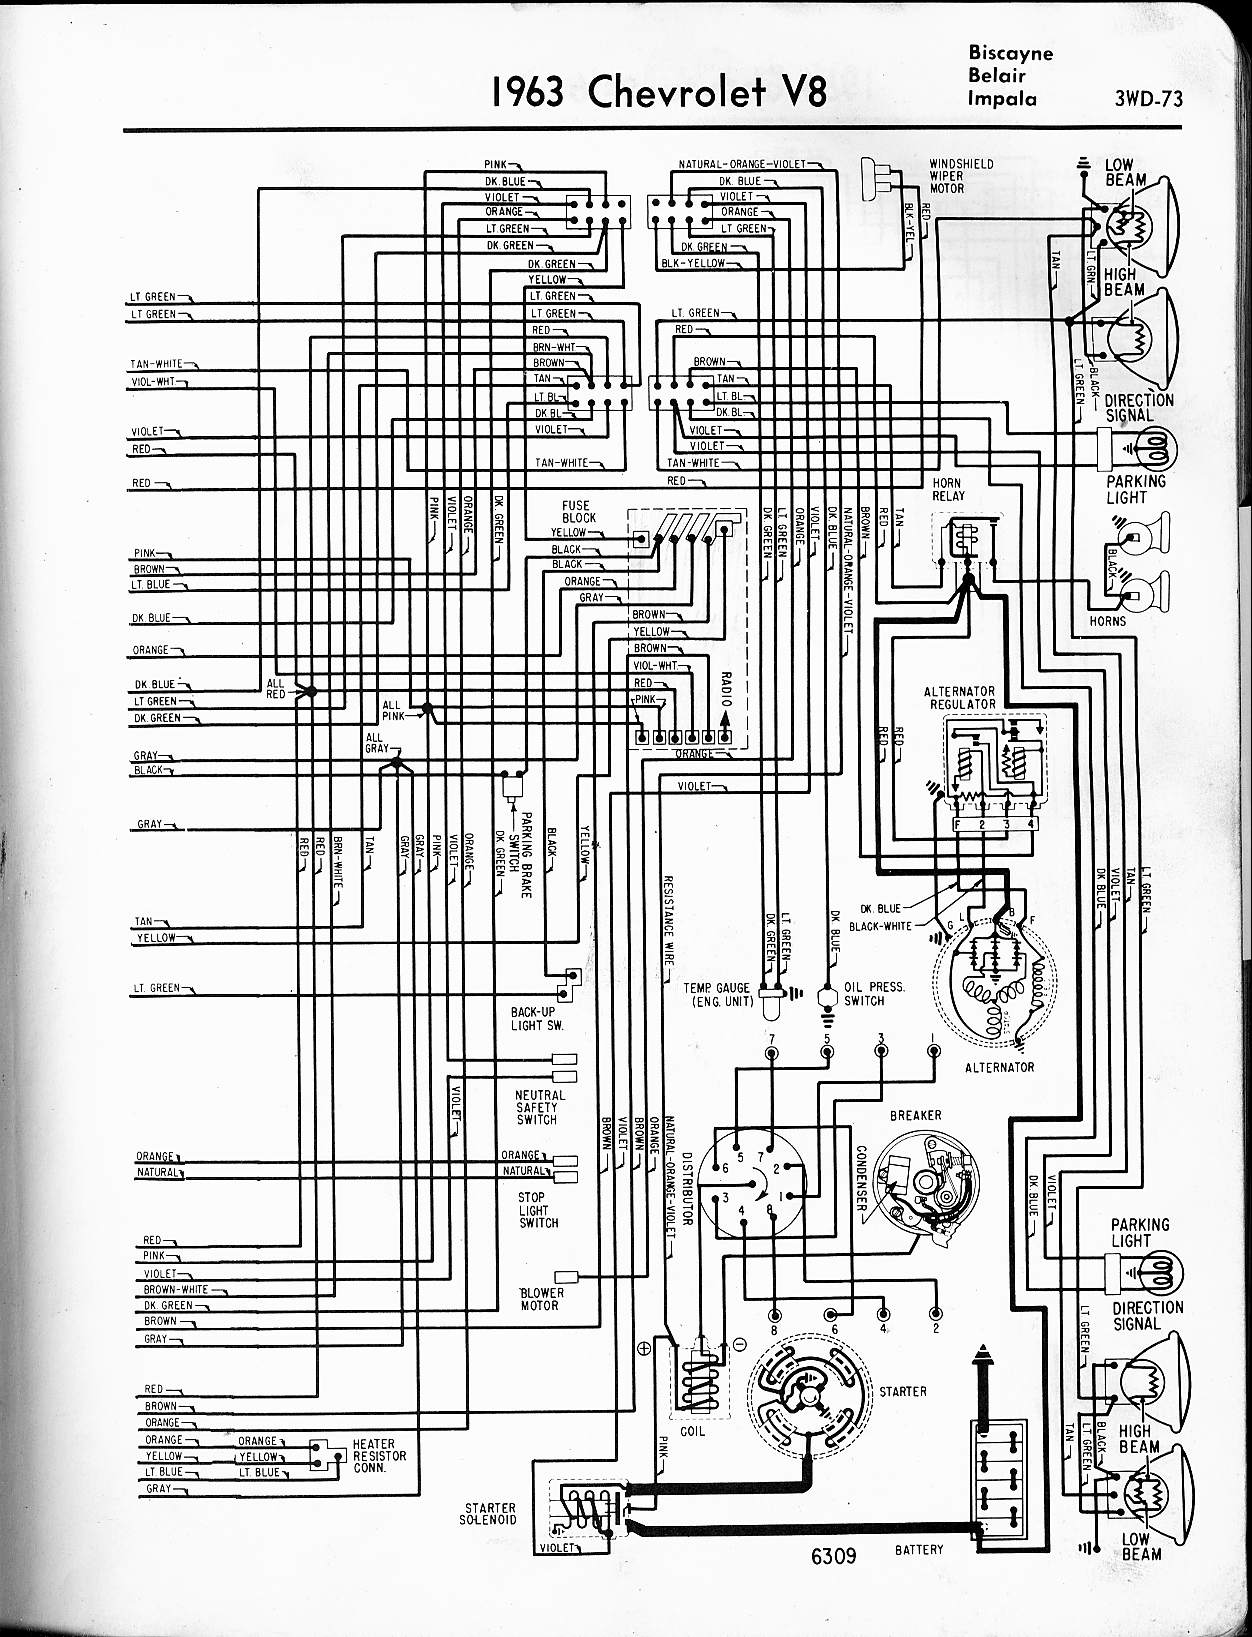 hight resolution of 63 chevy 2 wiring diagram data wiring schema cj5 wiring schematic 1966 impala wiring schematic